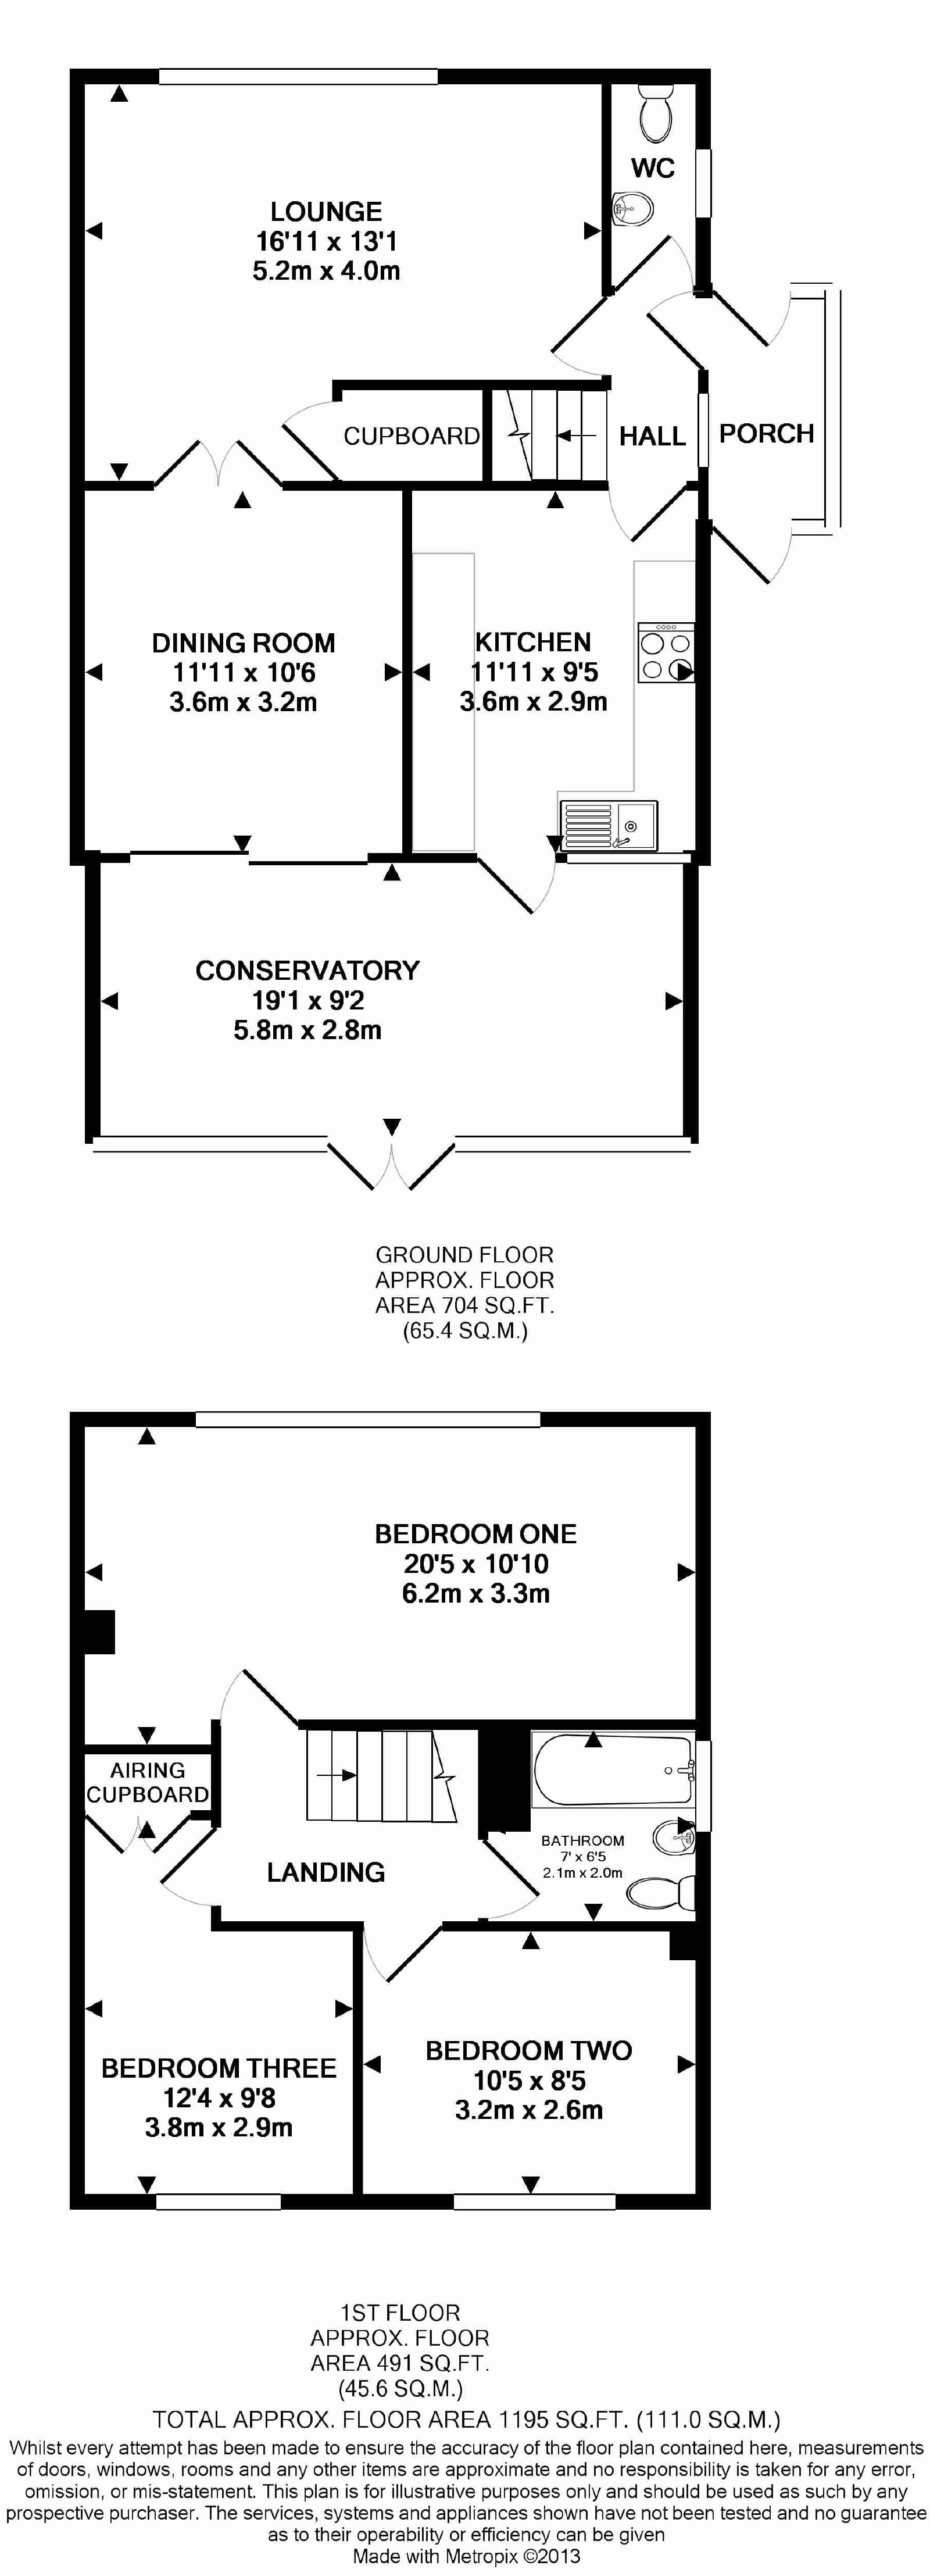 3 bed house plans uk for British house plans